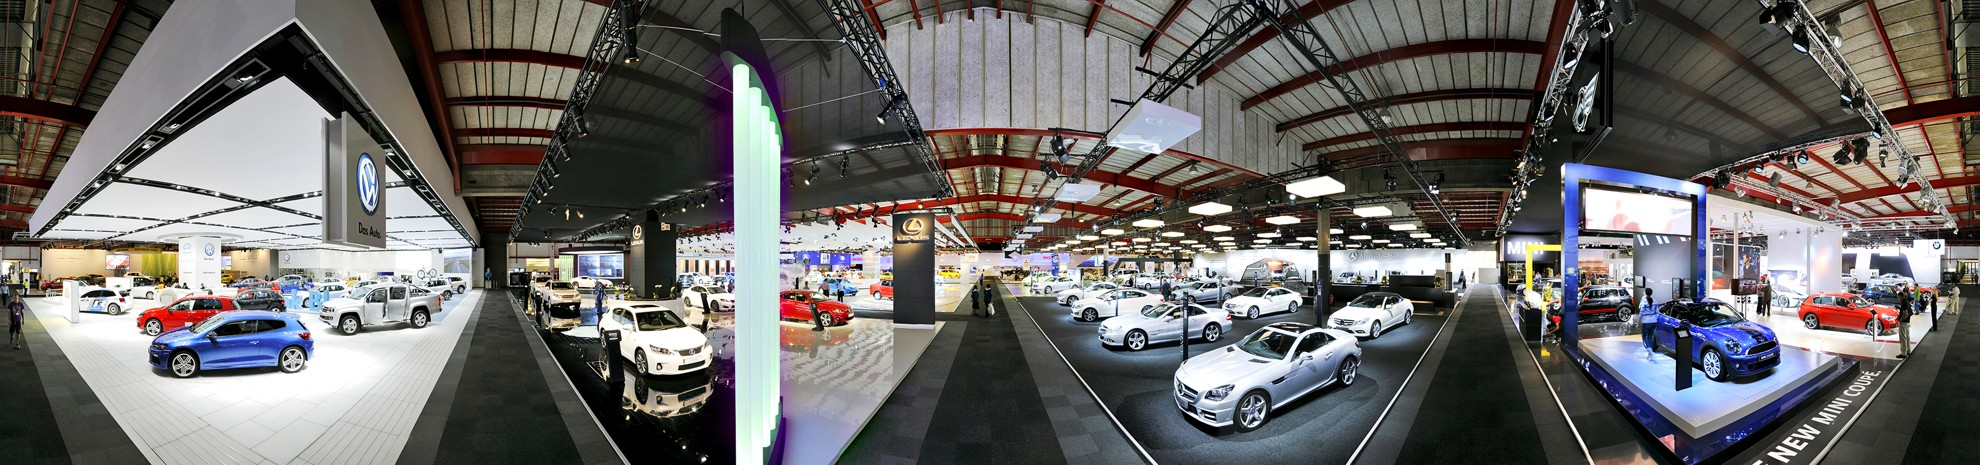 South Africa Motor Dealership